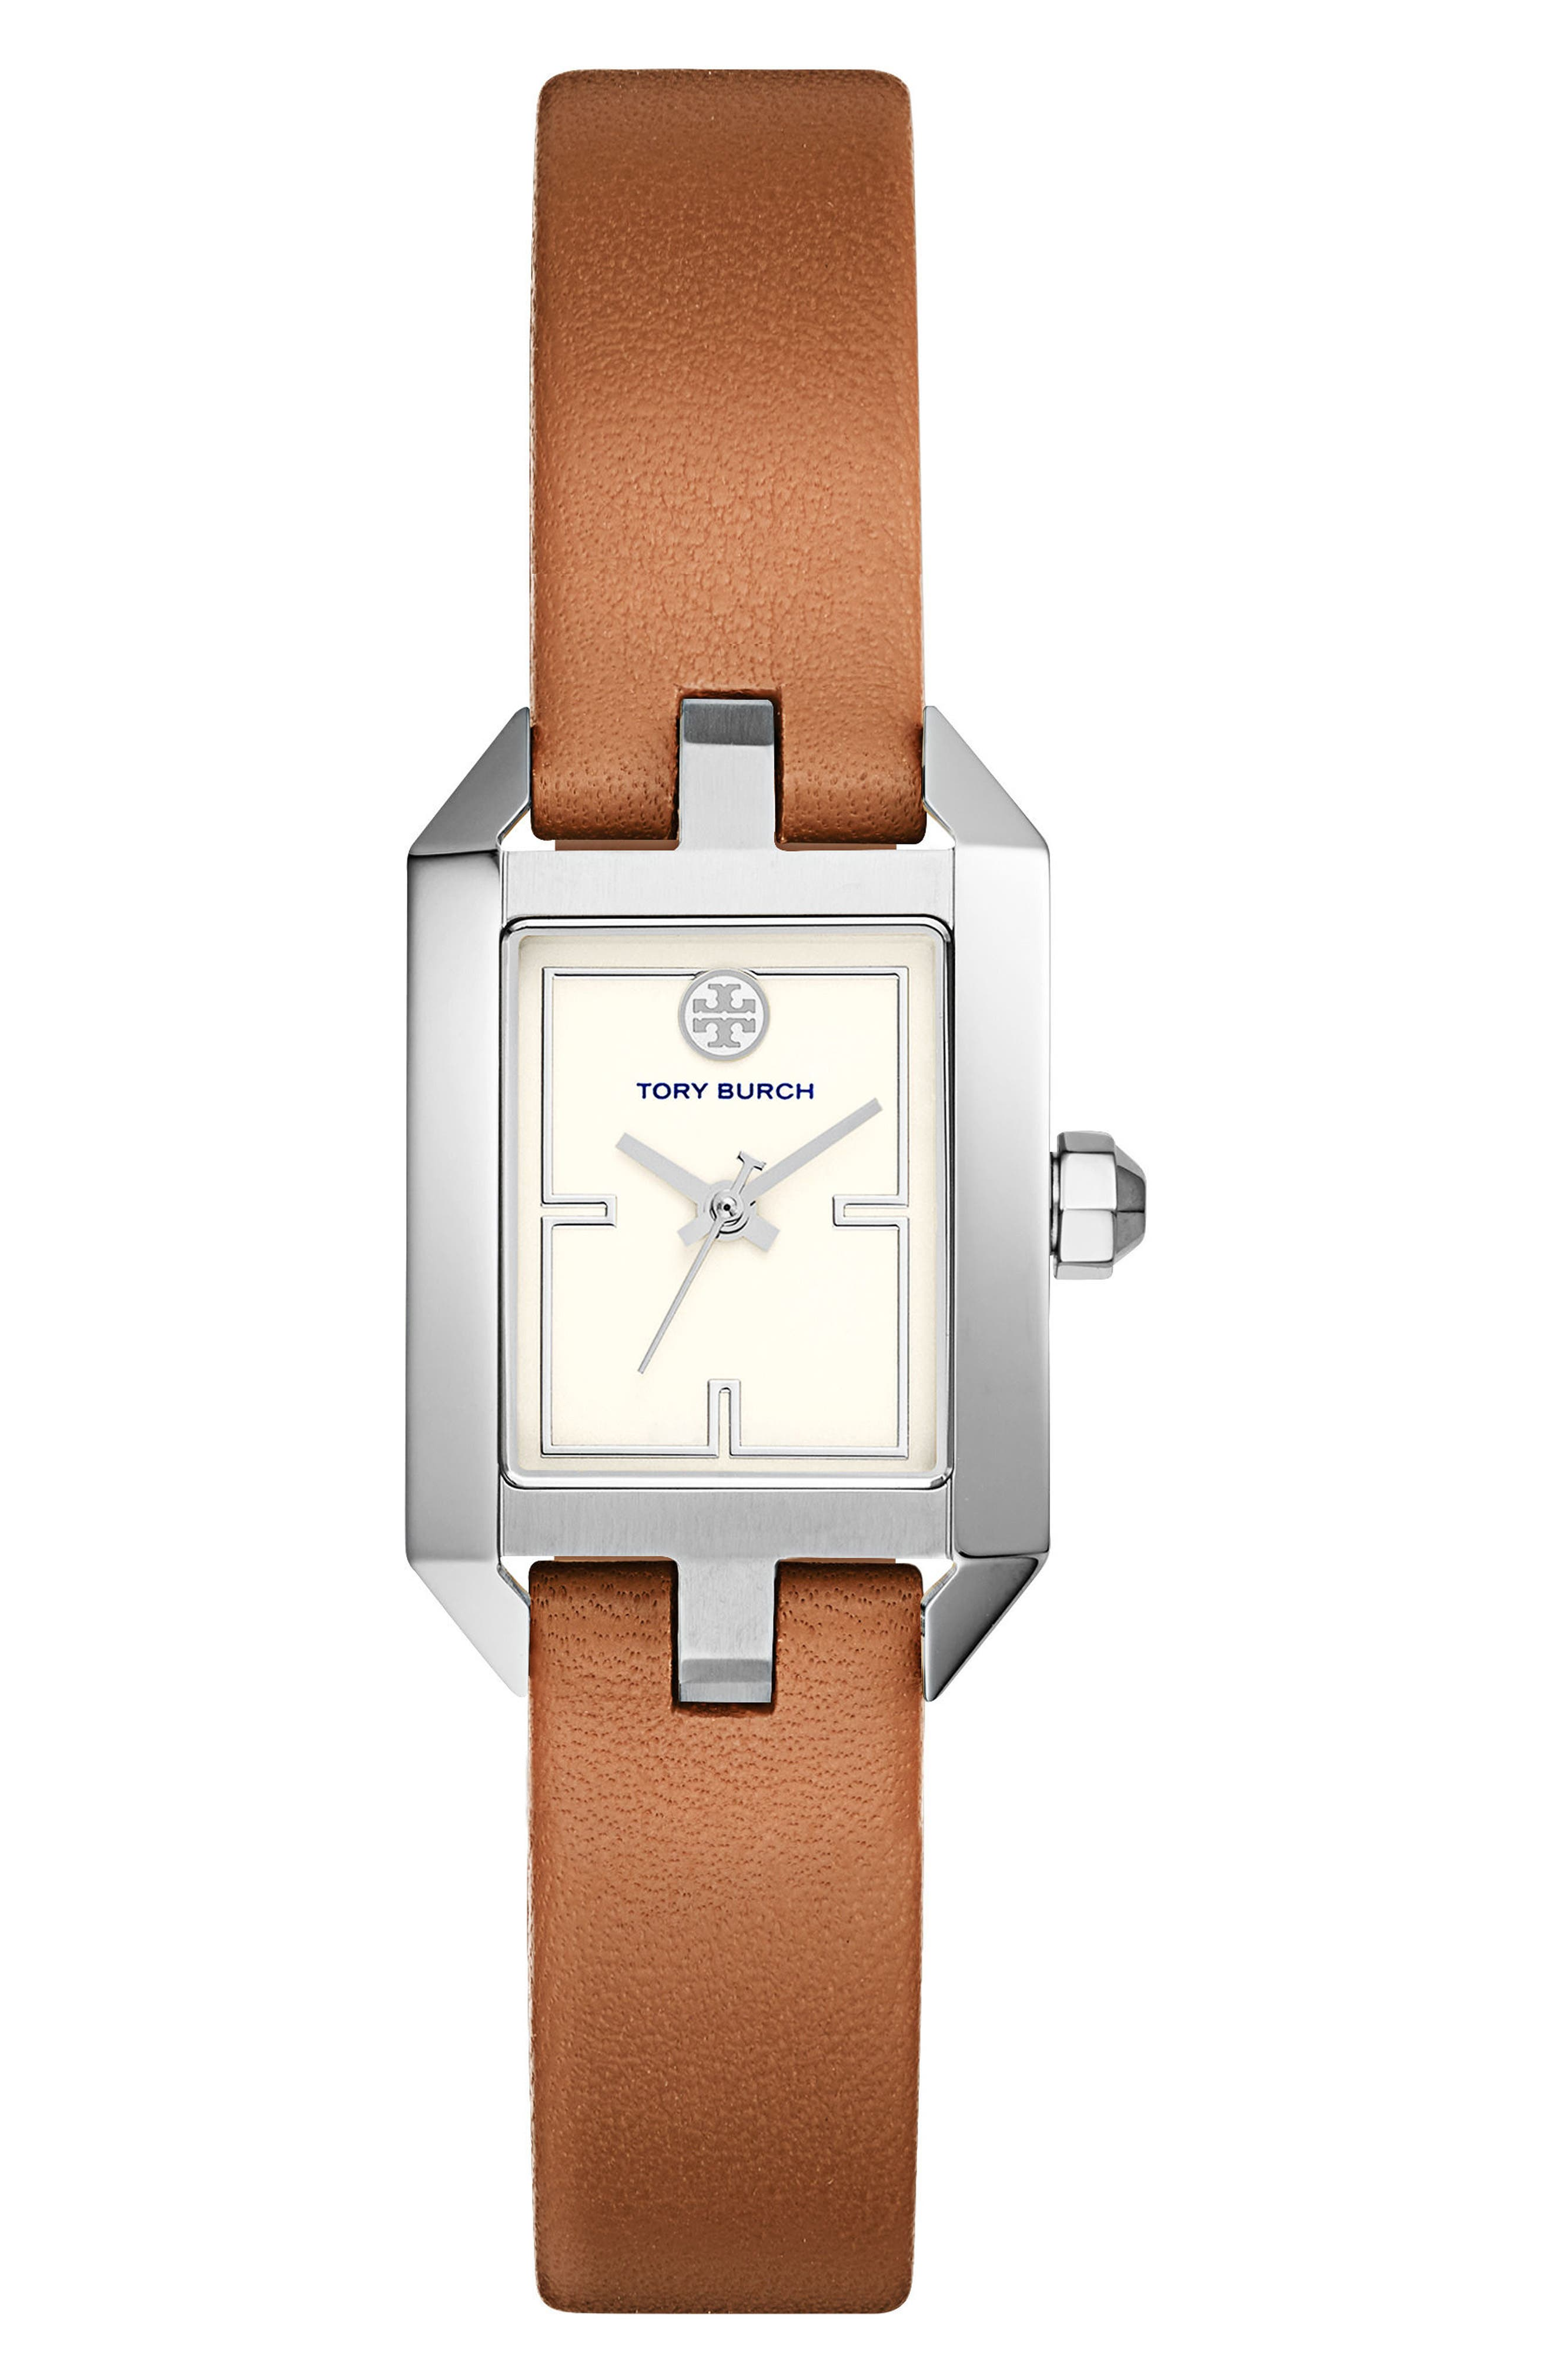 TORY BURCH Dalloway Leather Strap Watch, 23mm x 36.5mm